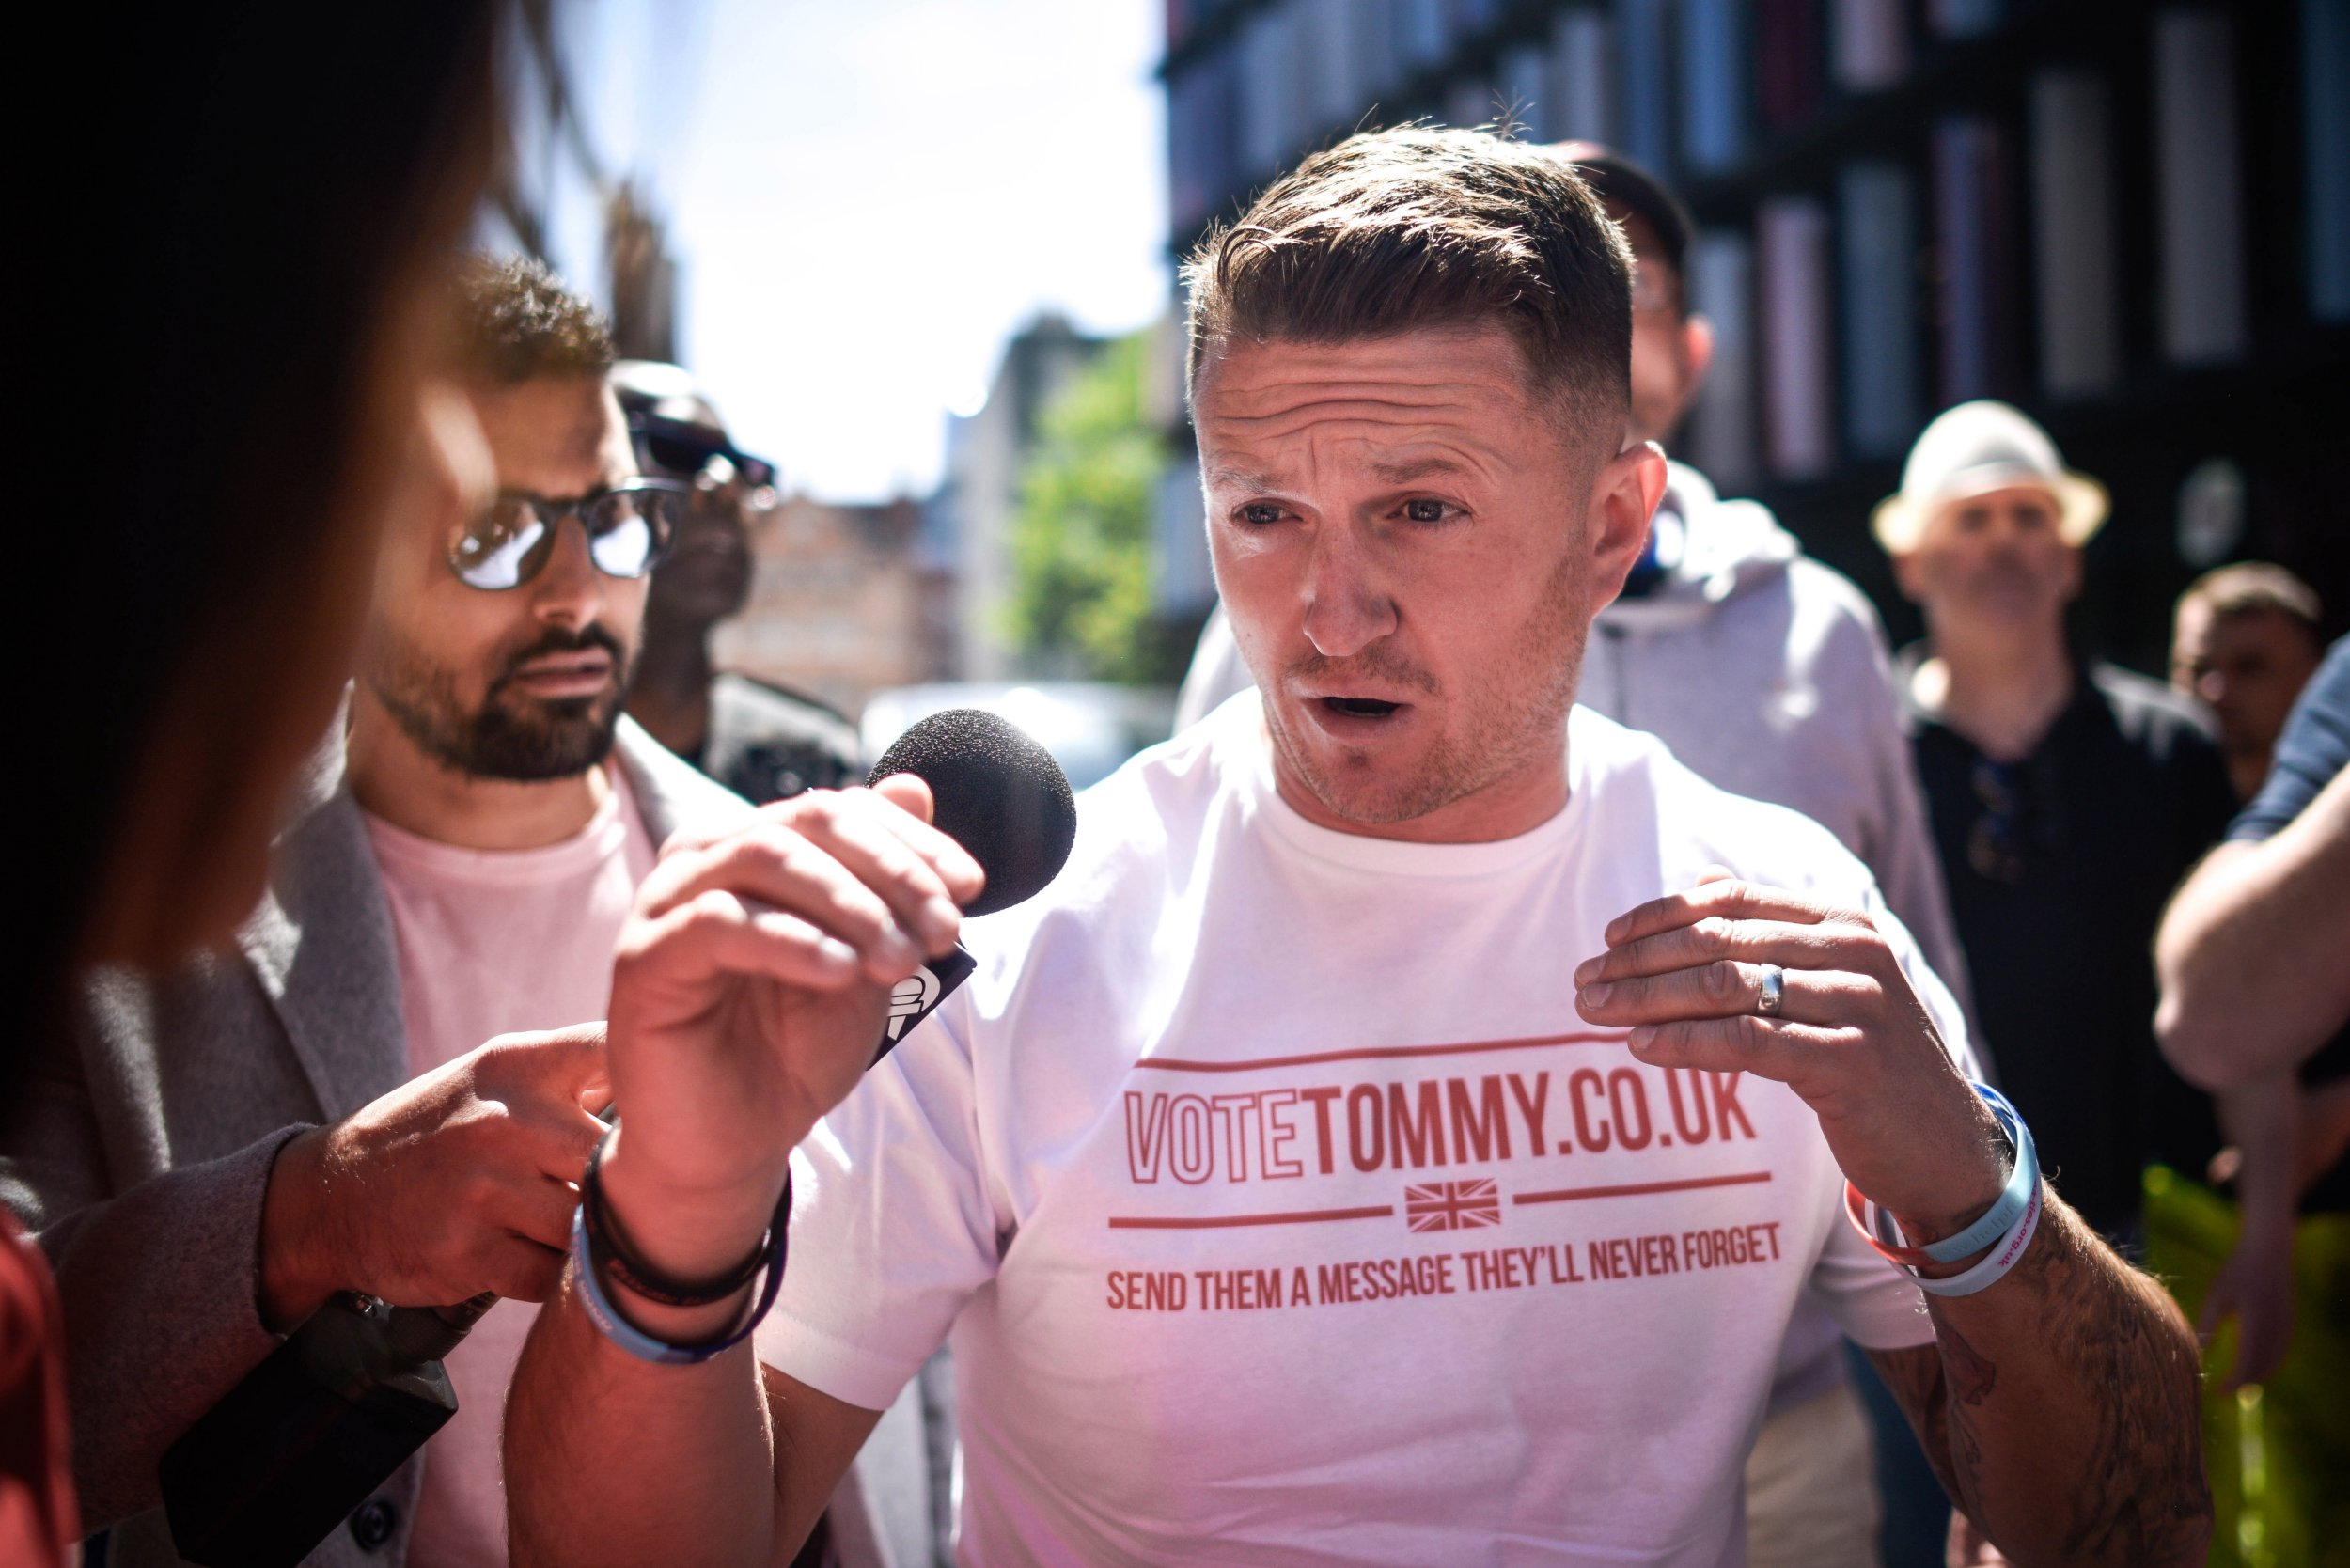 LONDON, ENGLAND - MAY 14: British far-right activist and pundit, Tommy Robinson (real name Stephen Yaxley-Lennon) arrives at the Old Bailey on May 14, 2019 in London, England. Mr Robinson is appearing over allegations that he committed contempt of court by allegedly filming people involved in a criminal trial and broadcasting footage on social media. (Photo by Peter Summers/Getty Images)